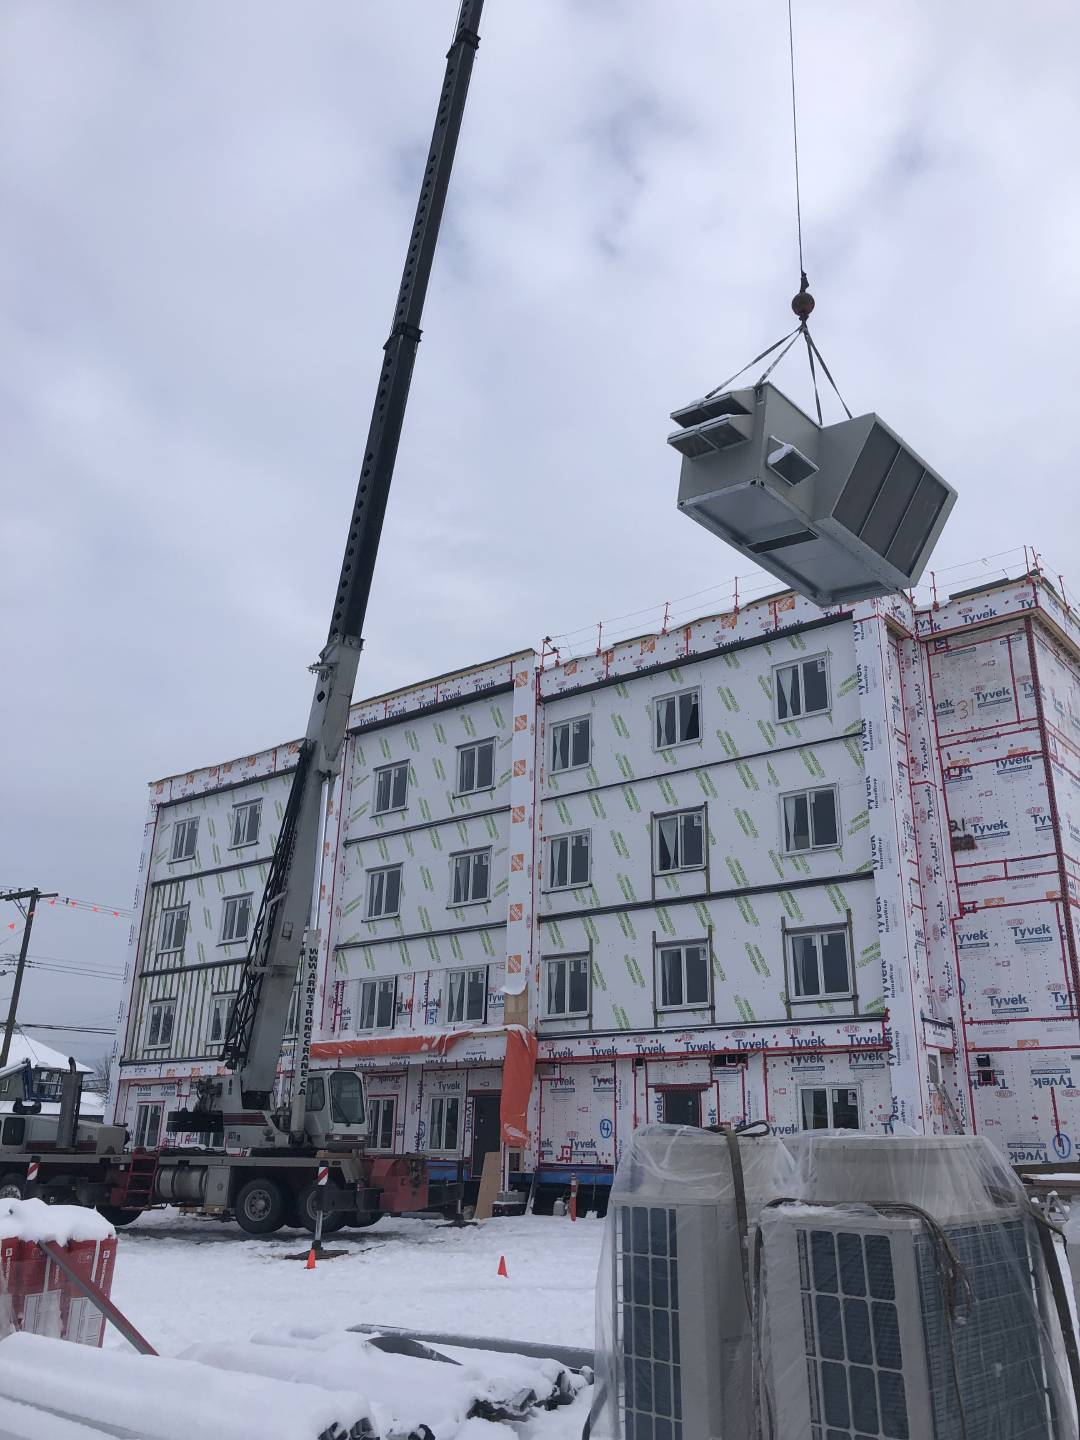 ventilation system lifted with crane